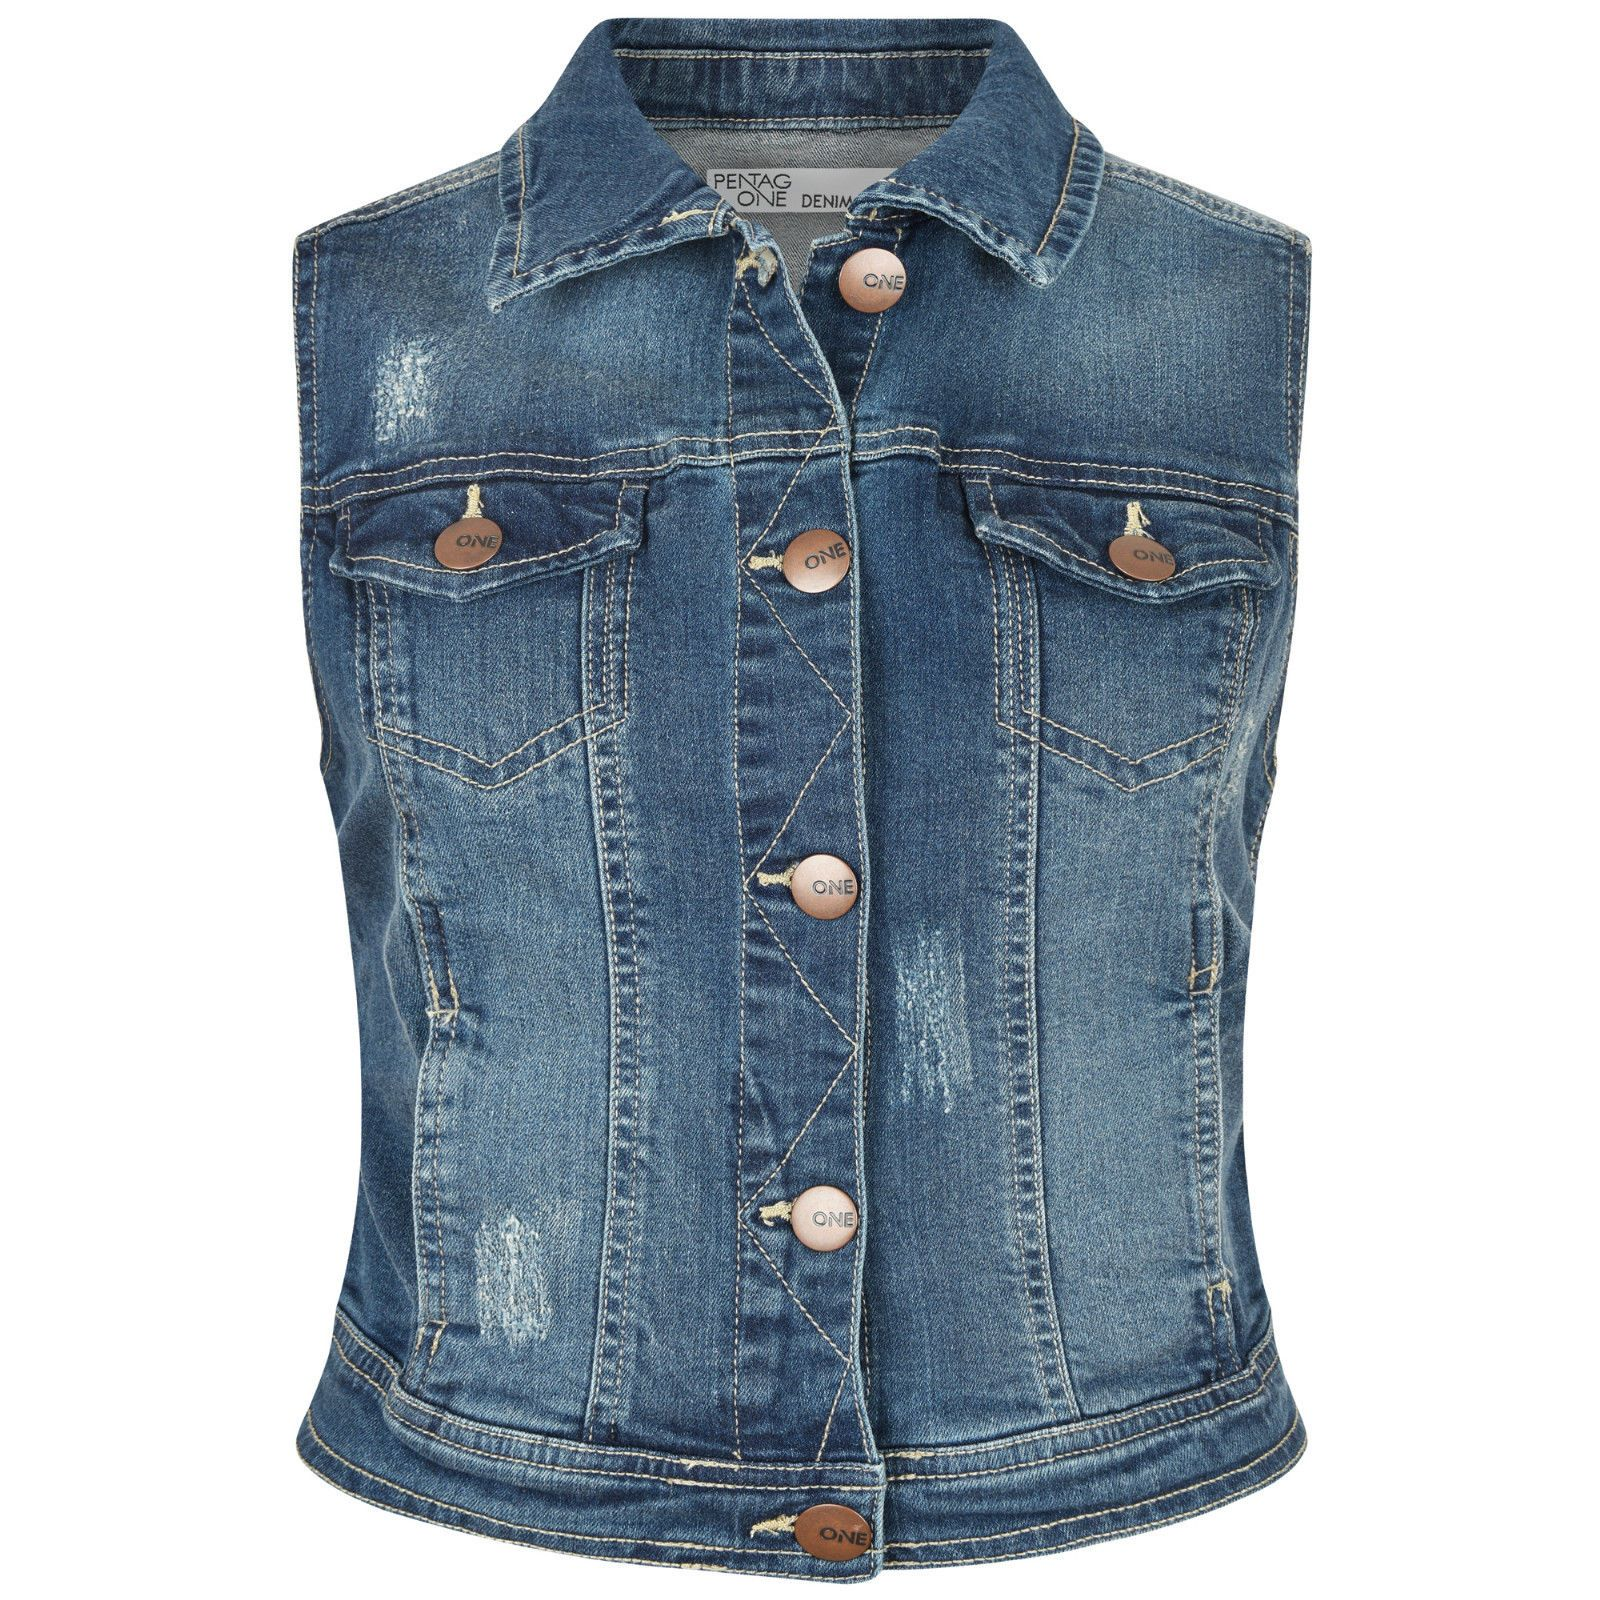 Ladies Denim Vest Women Girls Jacket Faded Sleeveless Jeans Top ...